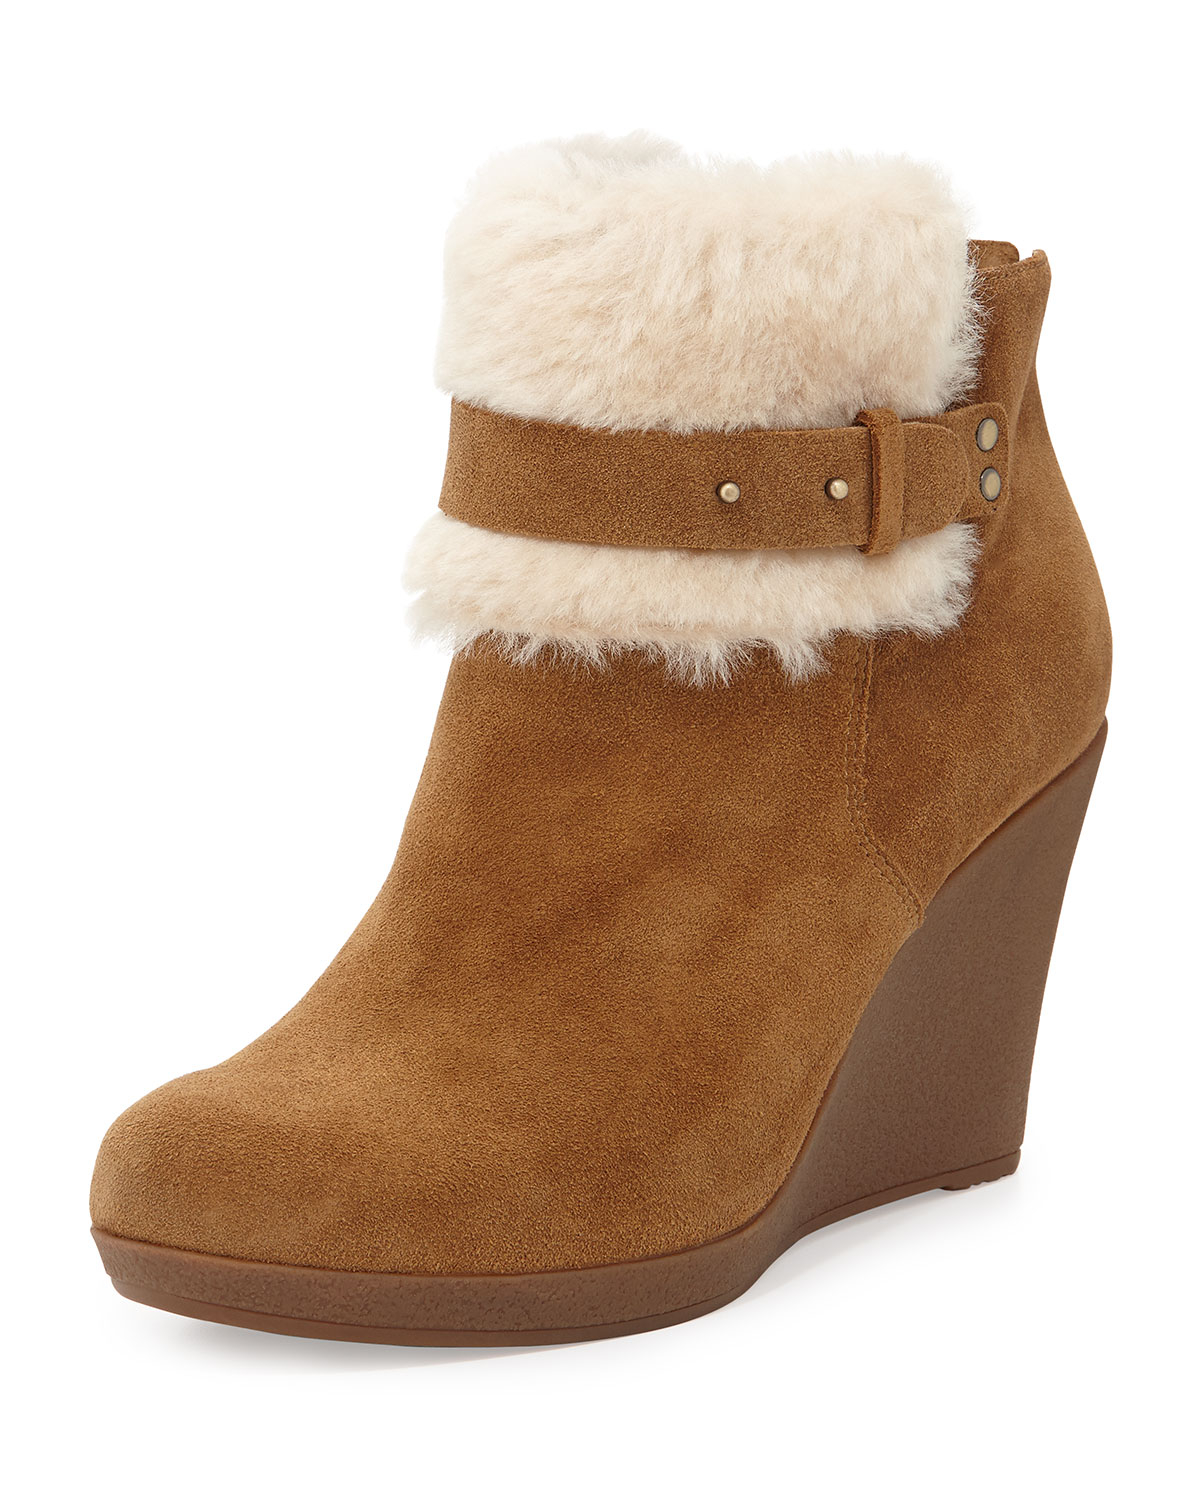 Australian Leather manufacturer Ugg Boots as well as Leather and Sheepskin products that are % Australian Made. We have the largest range of ugg boots available online including ugg boots for women, ugg boots for men, ugg boots for kids and even baby uggs!